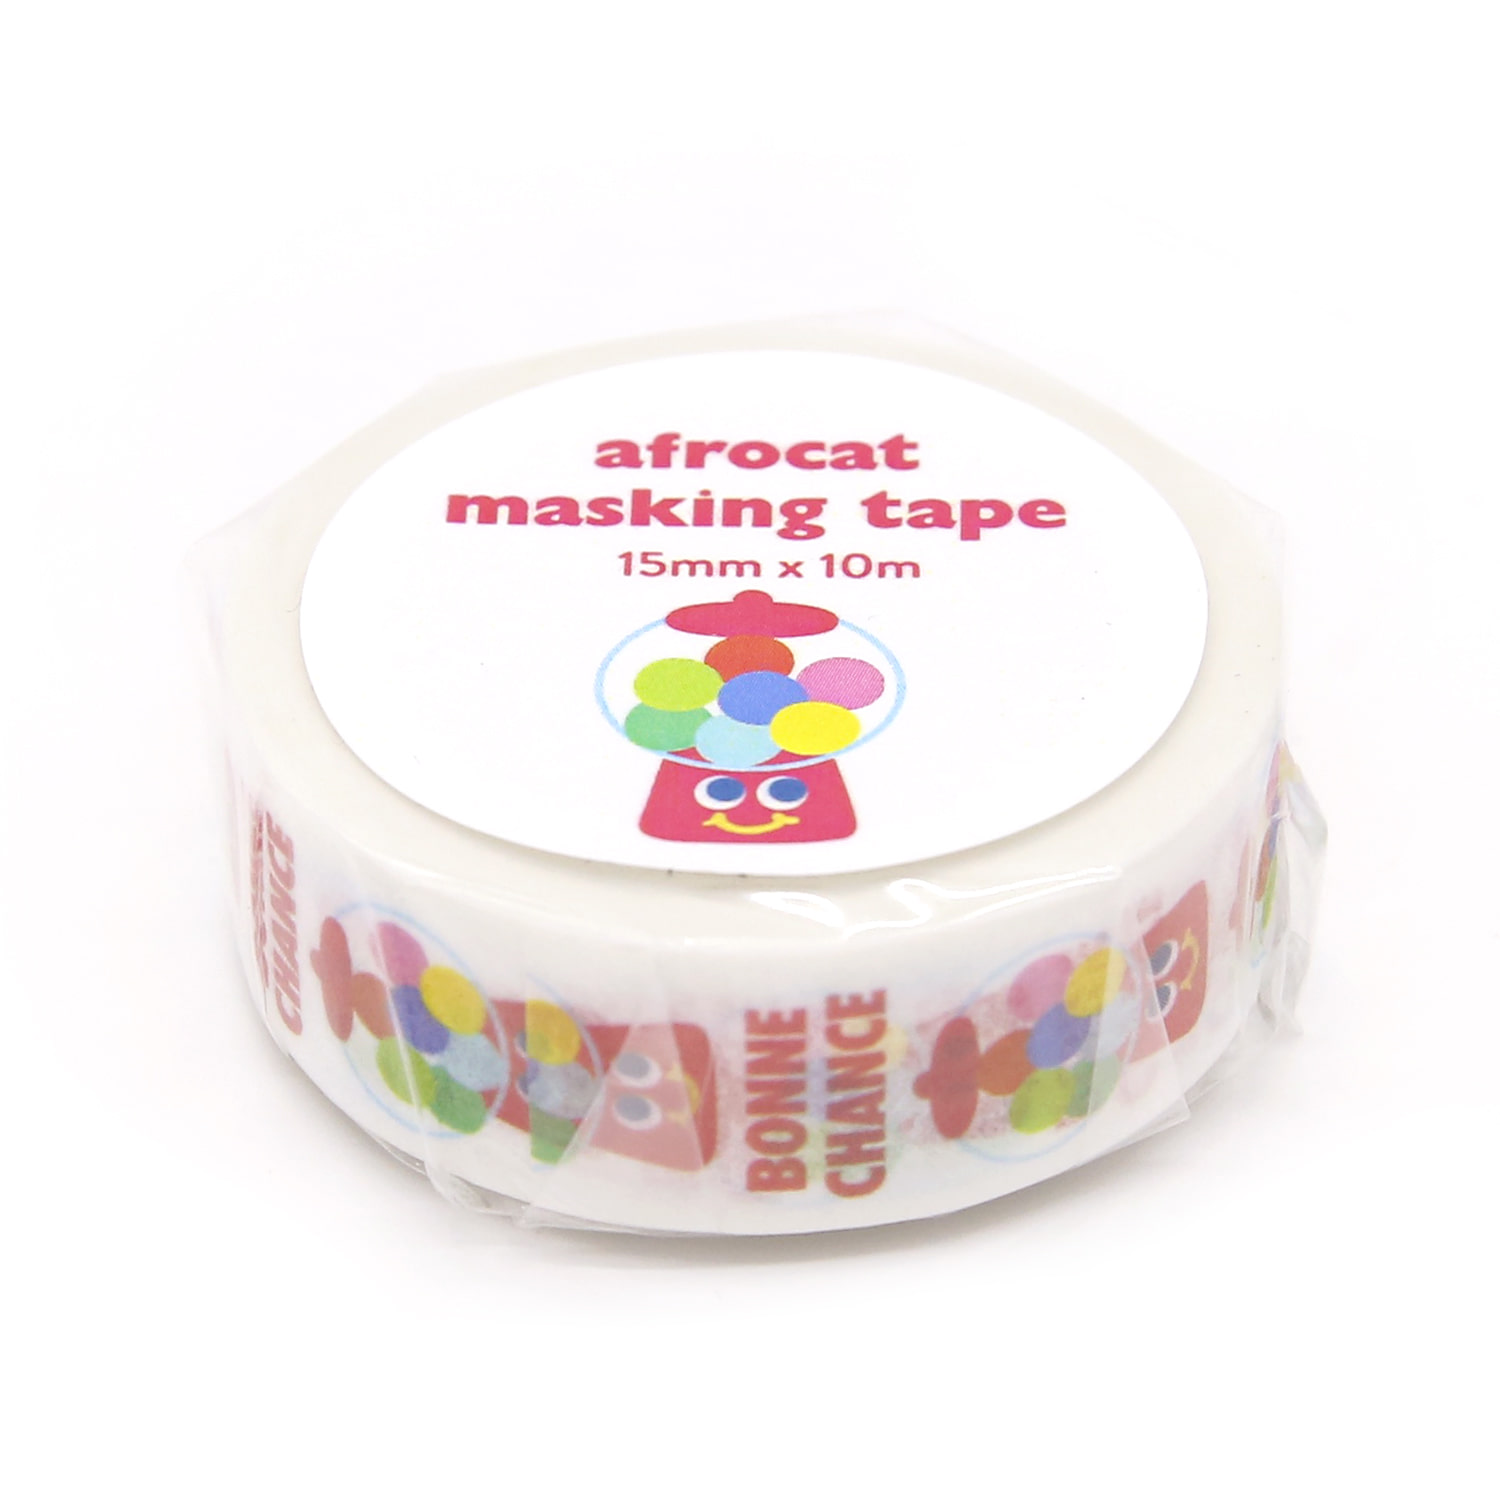 [afrocat masking tape] 12. Yammy friends _ candy machine 15mm